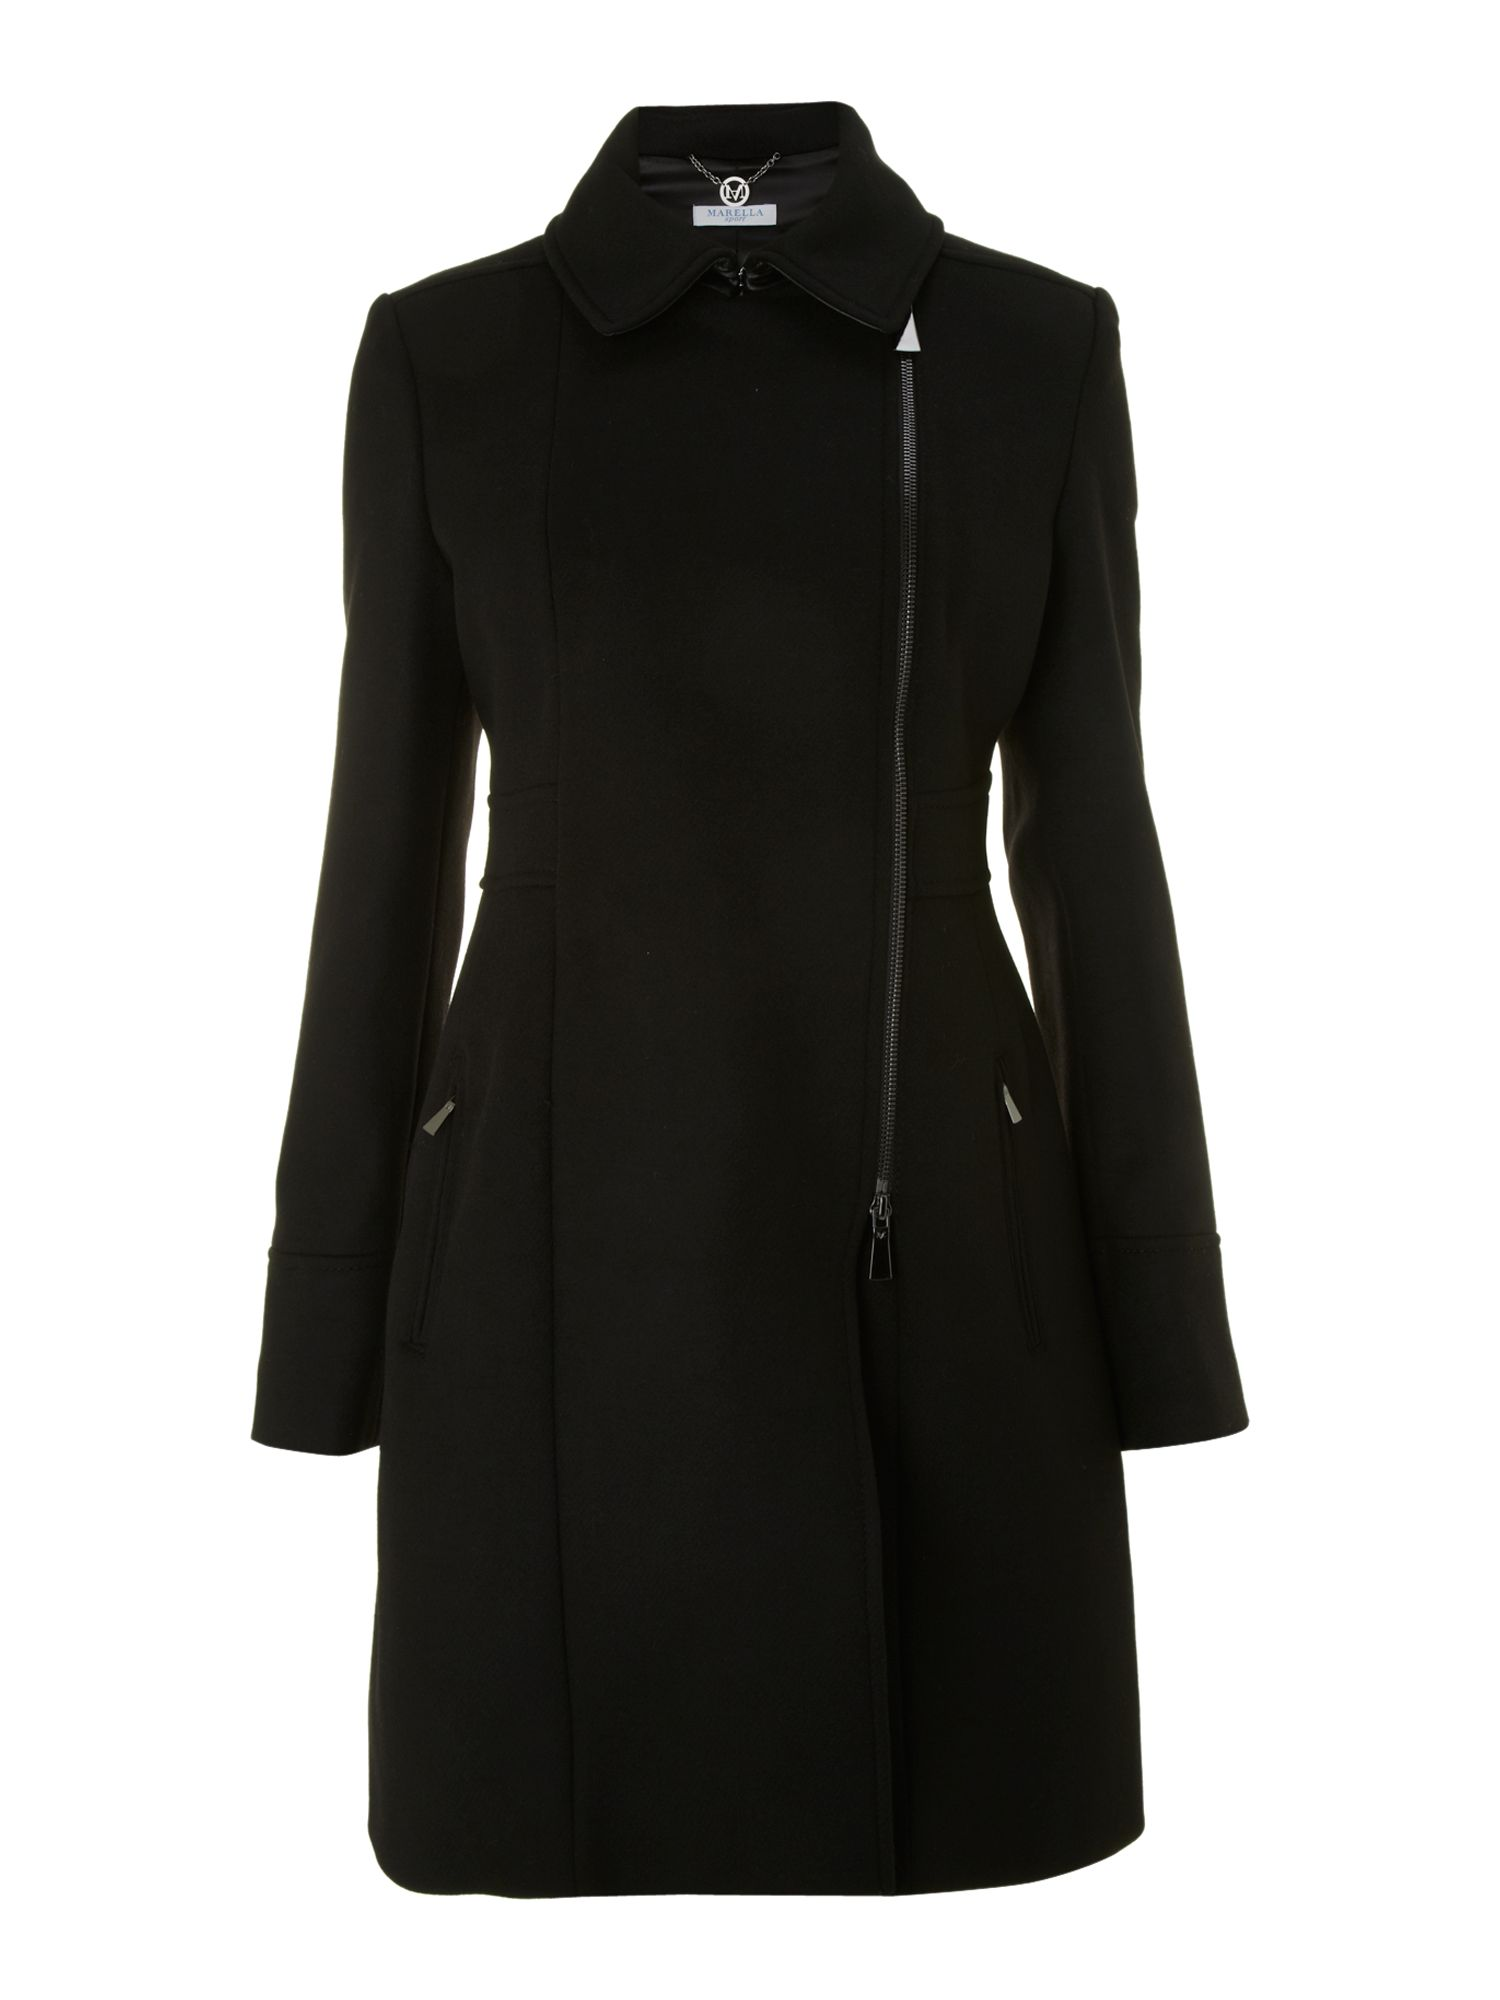 Battuta coat with leather revere collar